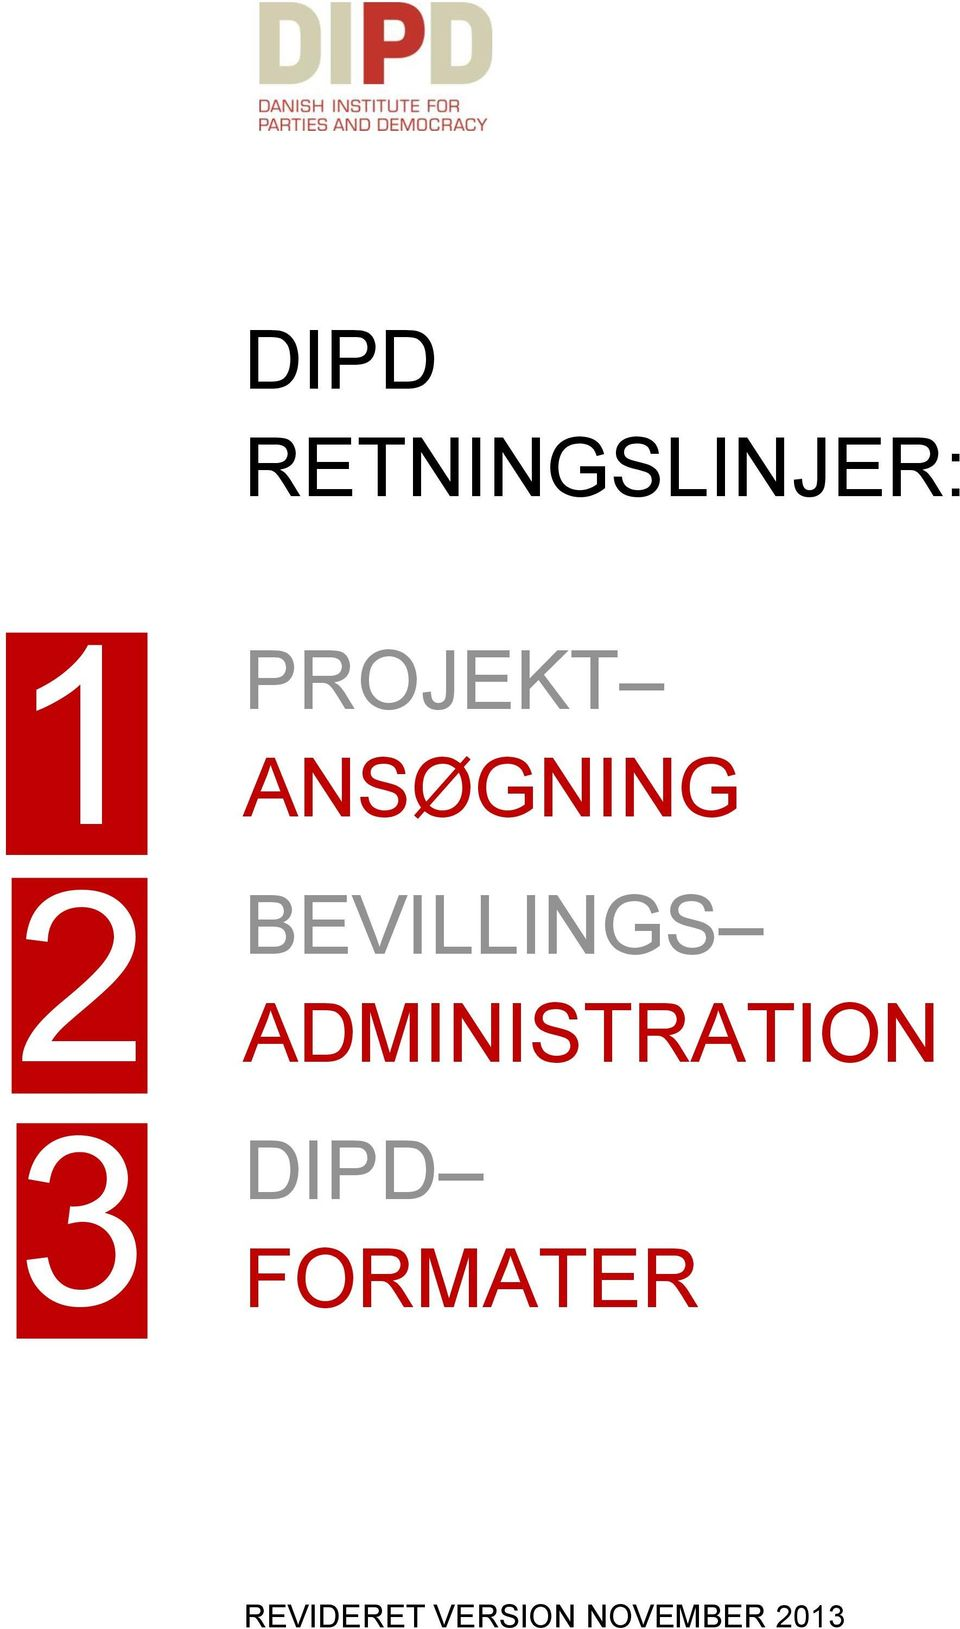 ADMINISTRATION DIPD FORMATER